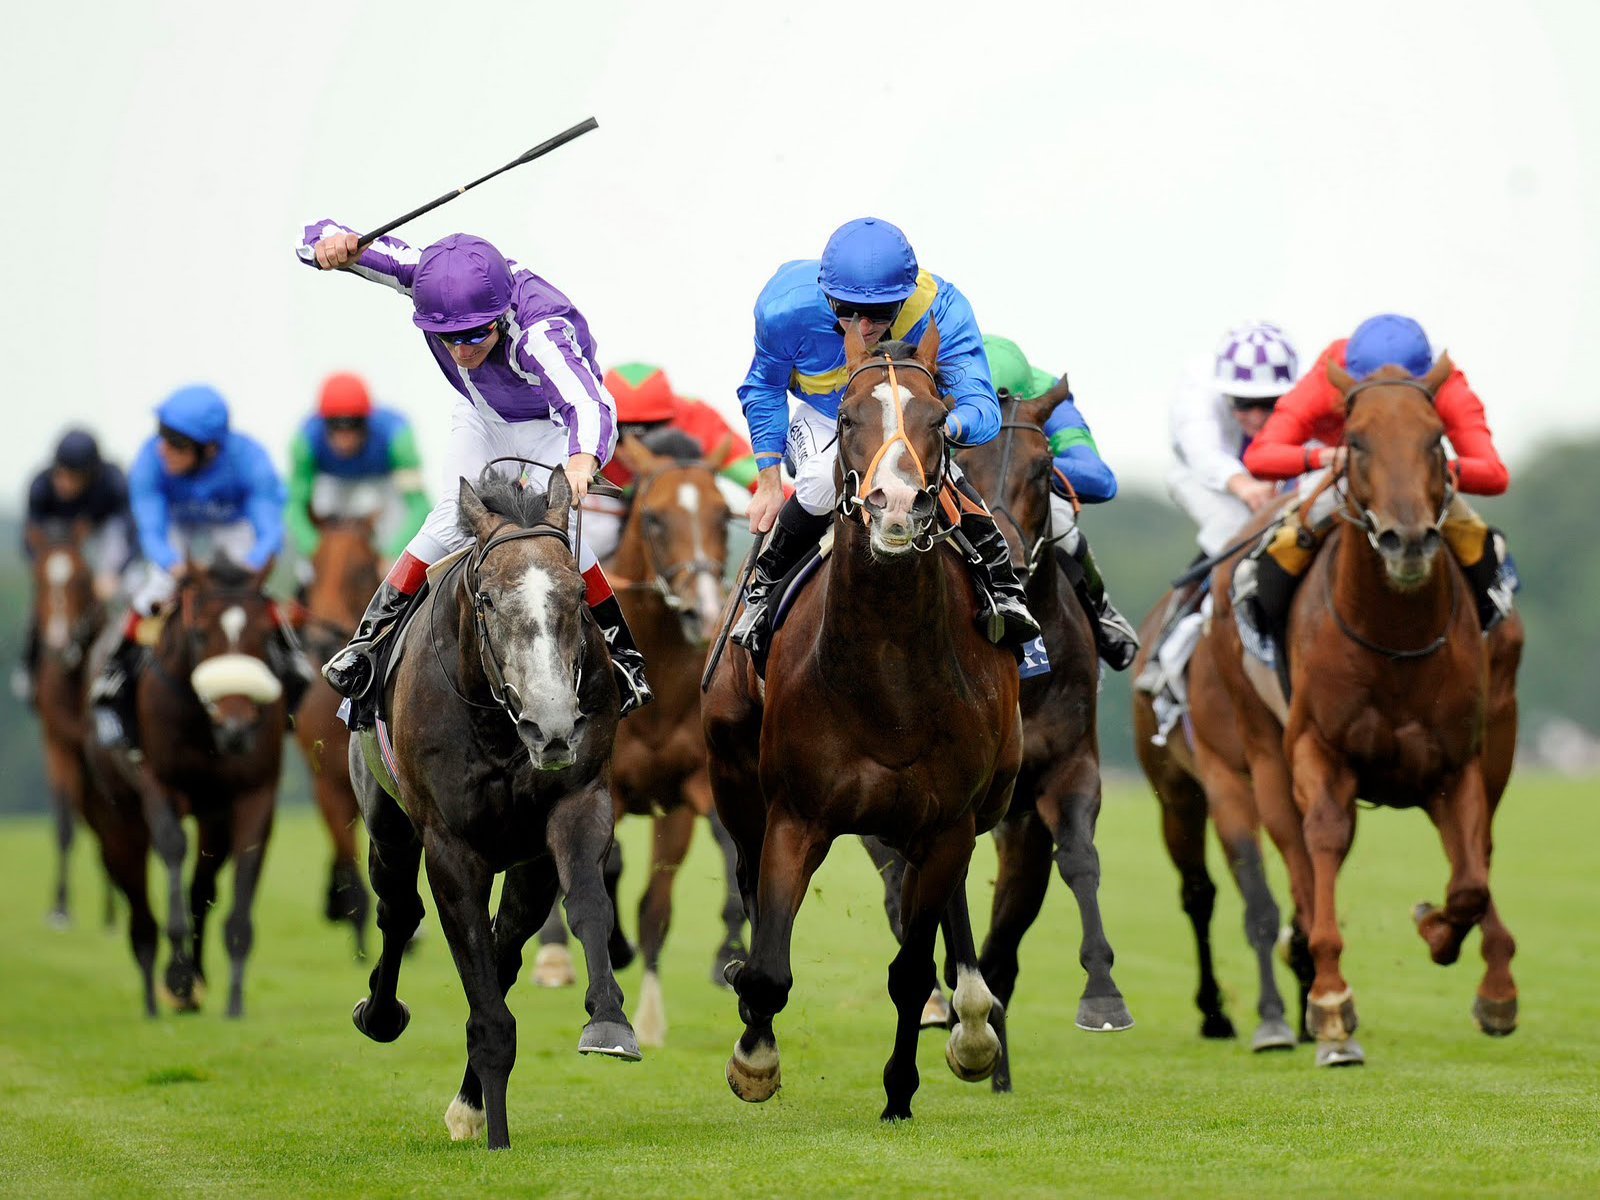 Is horse-racing too cruel to continue?